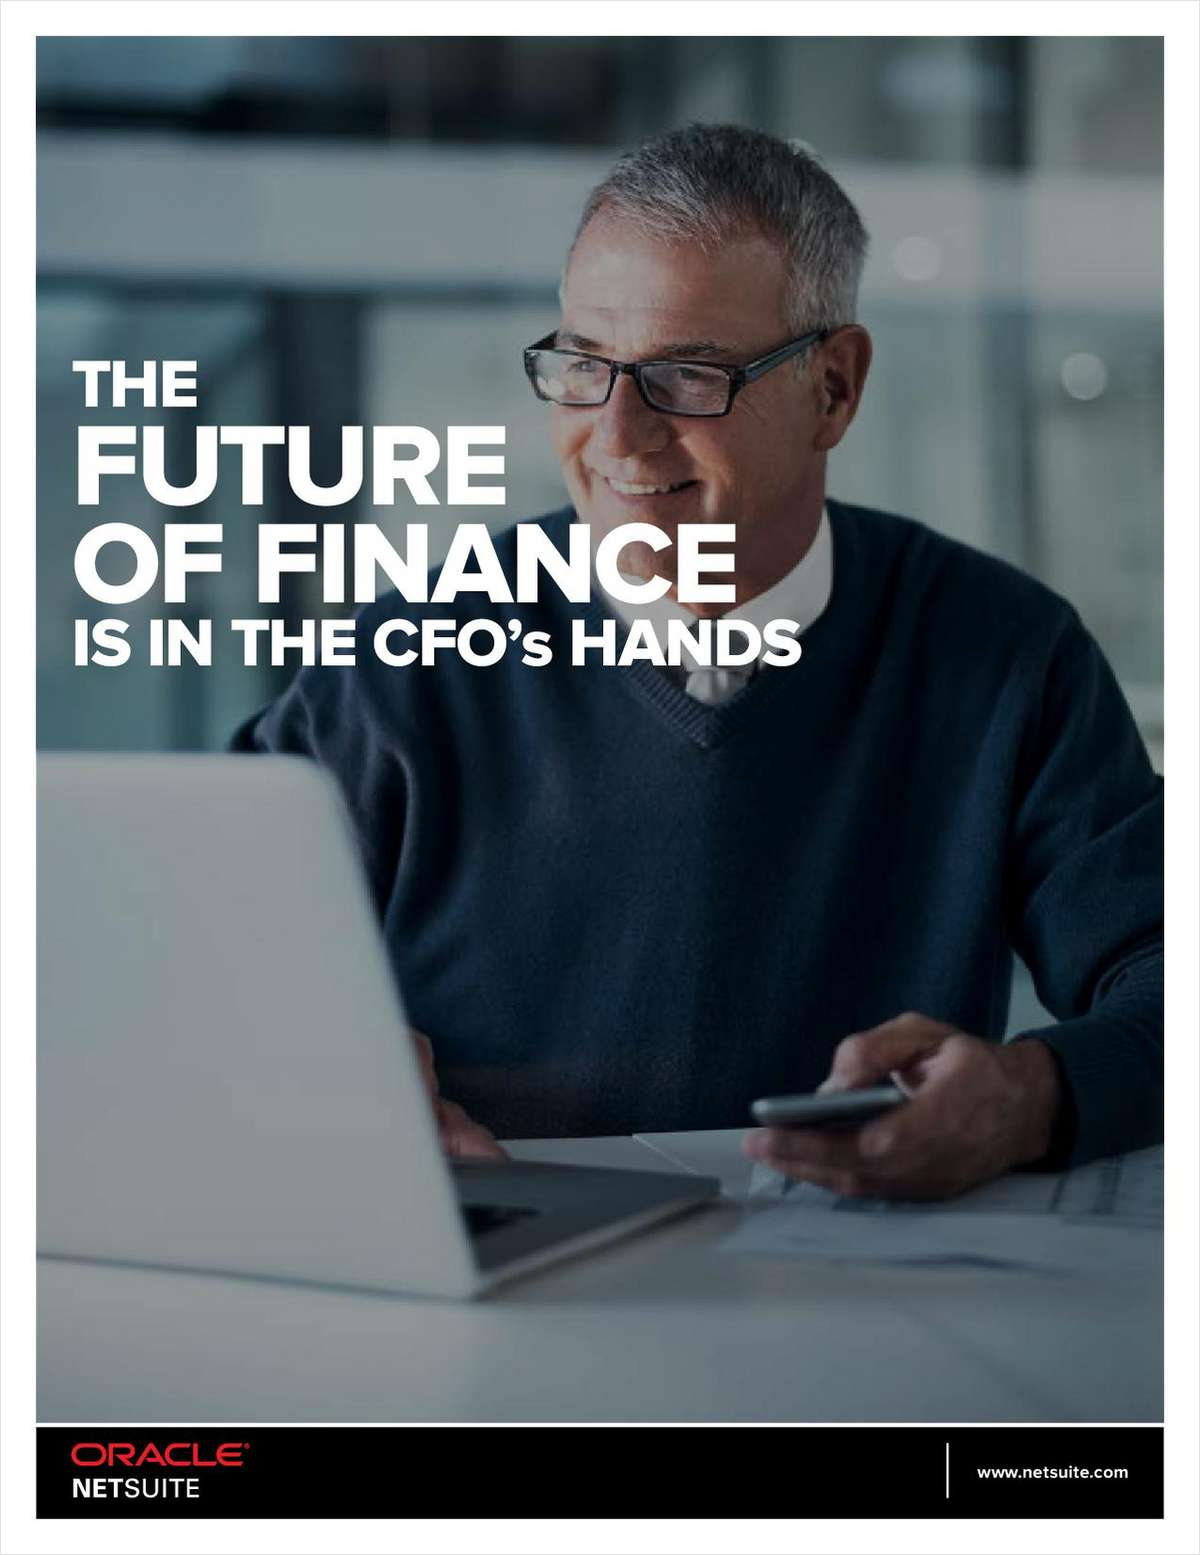 The Future of Finance is in the CFO's Hands